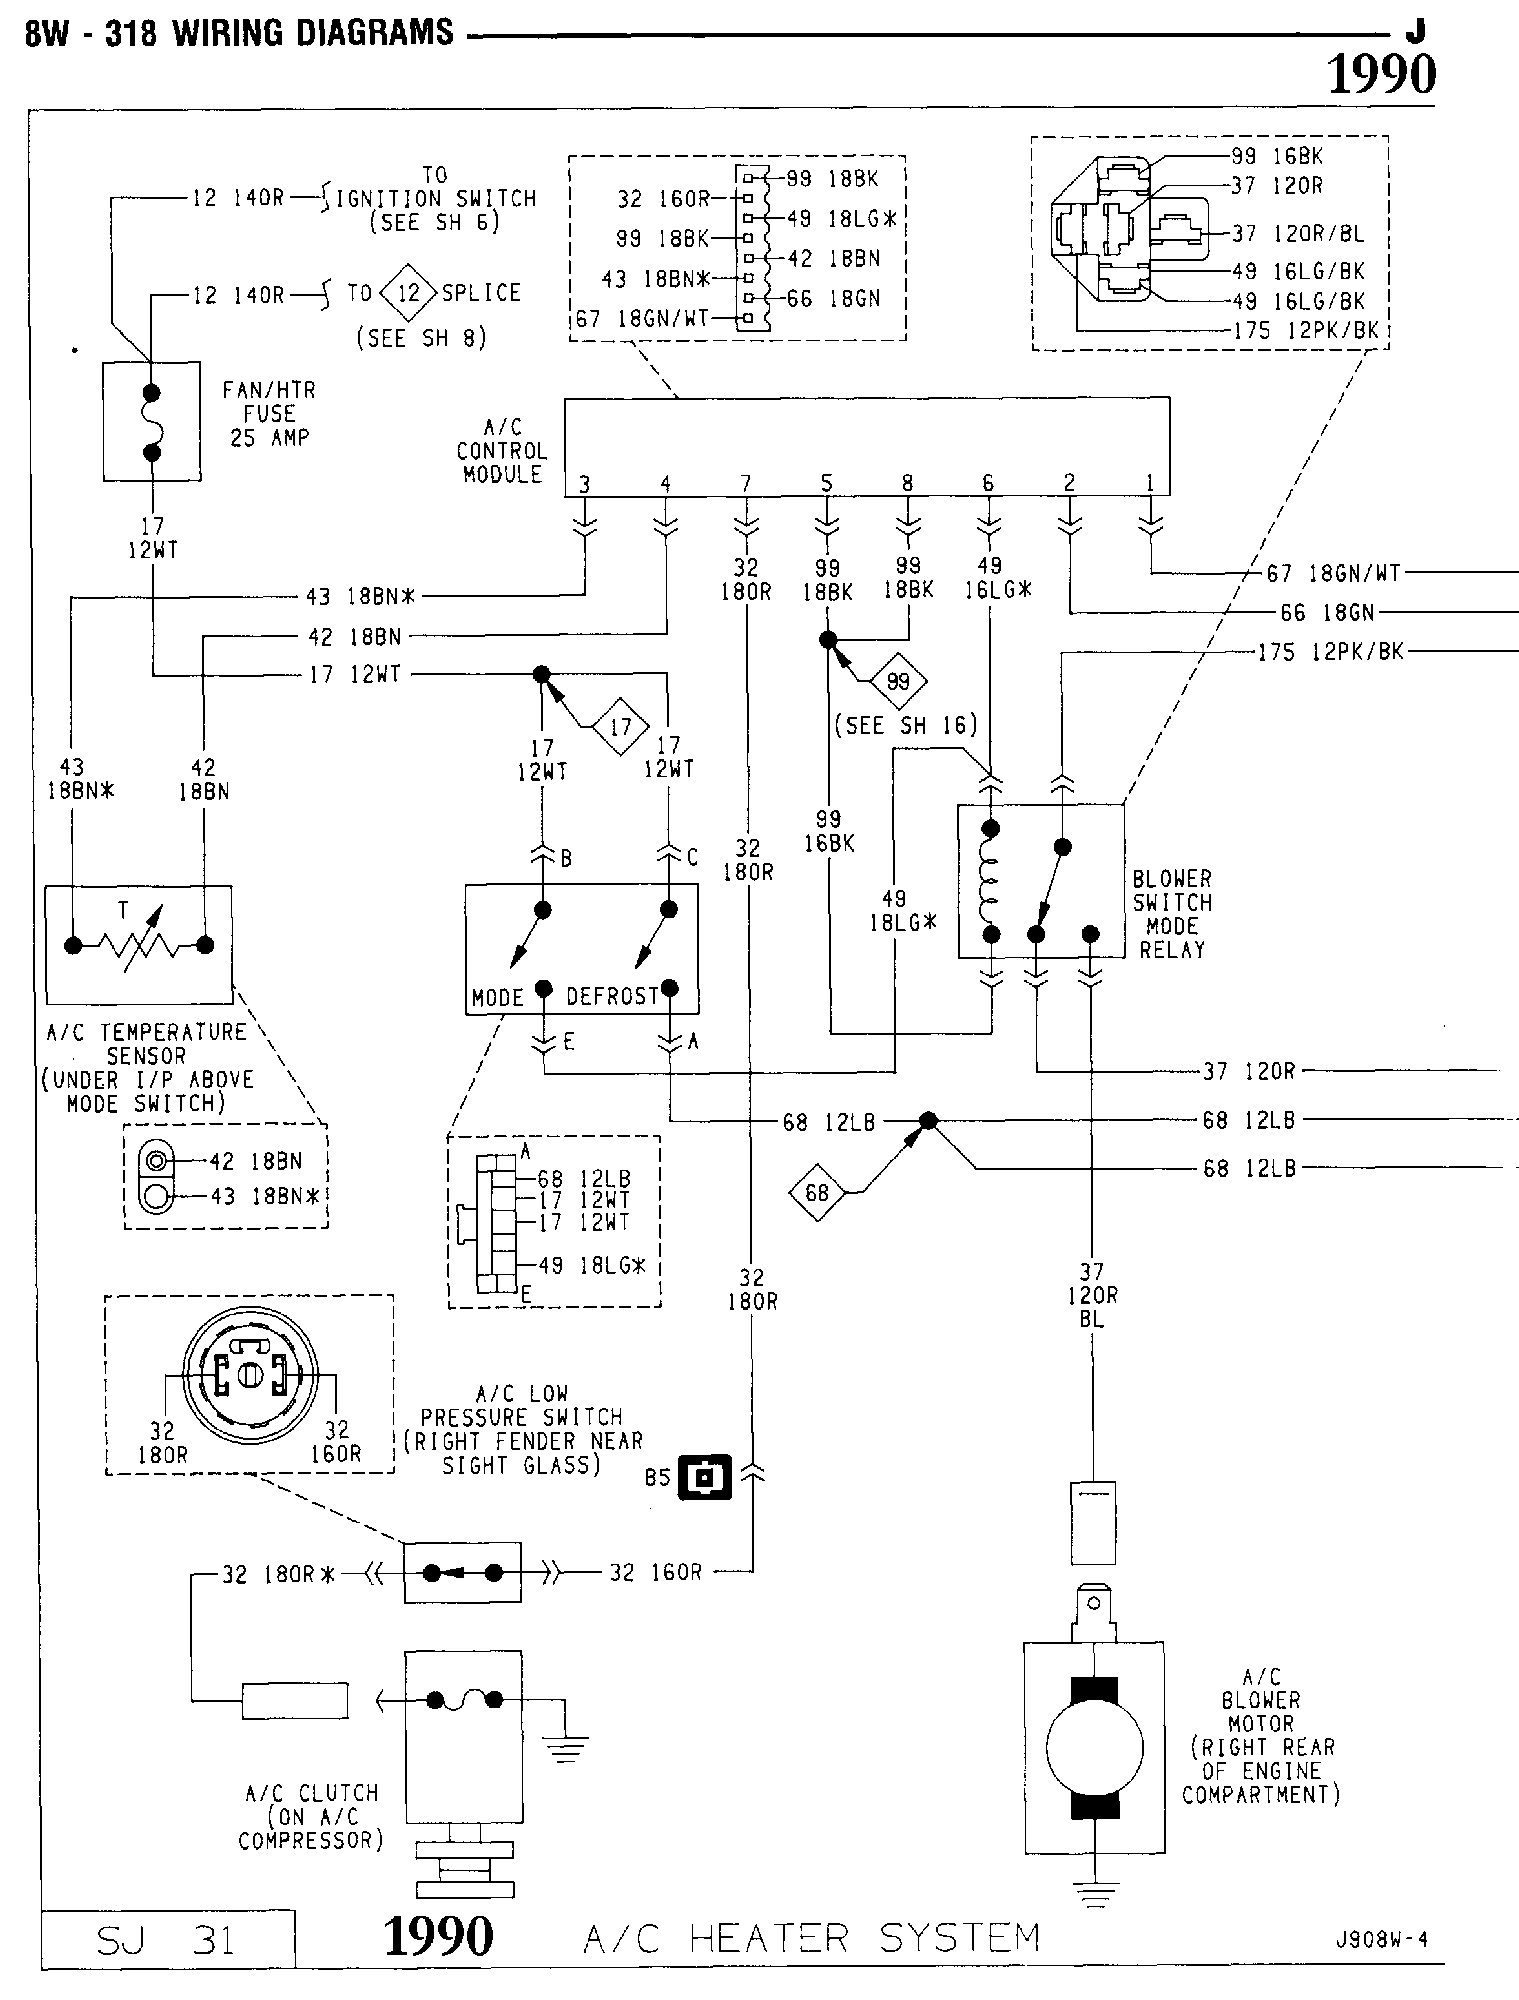 Solved Need Help With A C Full Size Jeep Network 1990 Yj Heater Wiring Diagram Heres The Diagrams Http Oljeepcom Gw Elec 90 Numeric Ac Heatersystem 8w Page 31